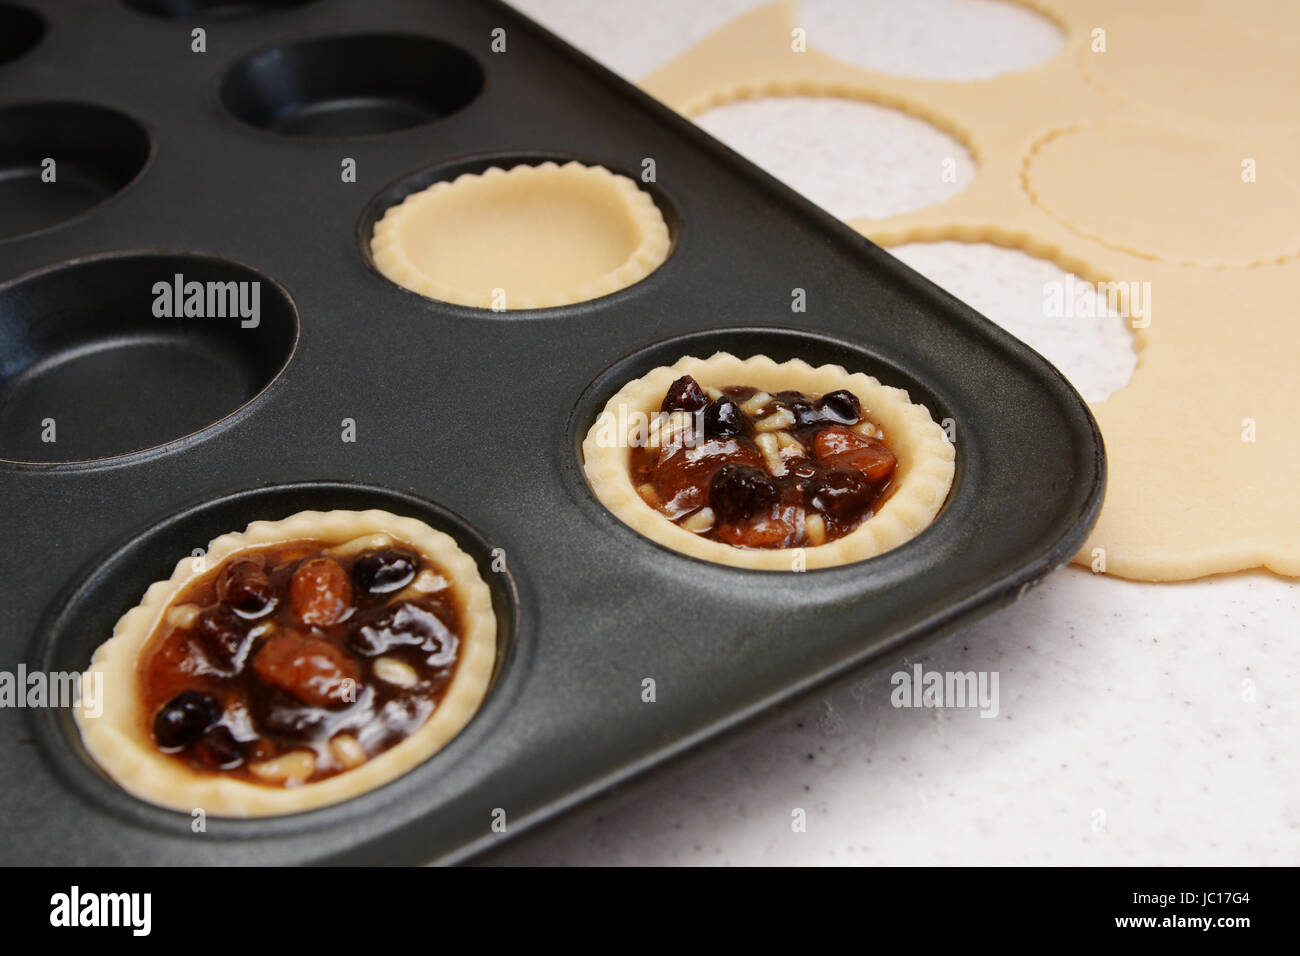 Making mince pies - pastry cases filled with traditional mincemeat Stock Photo